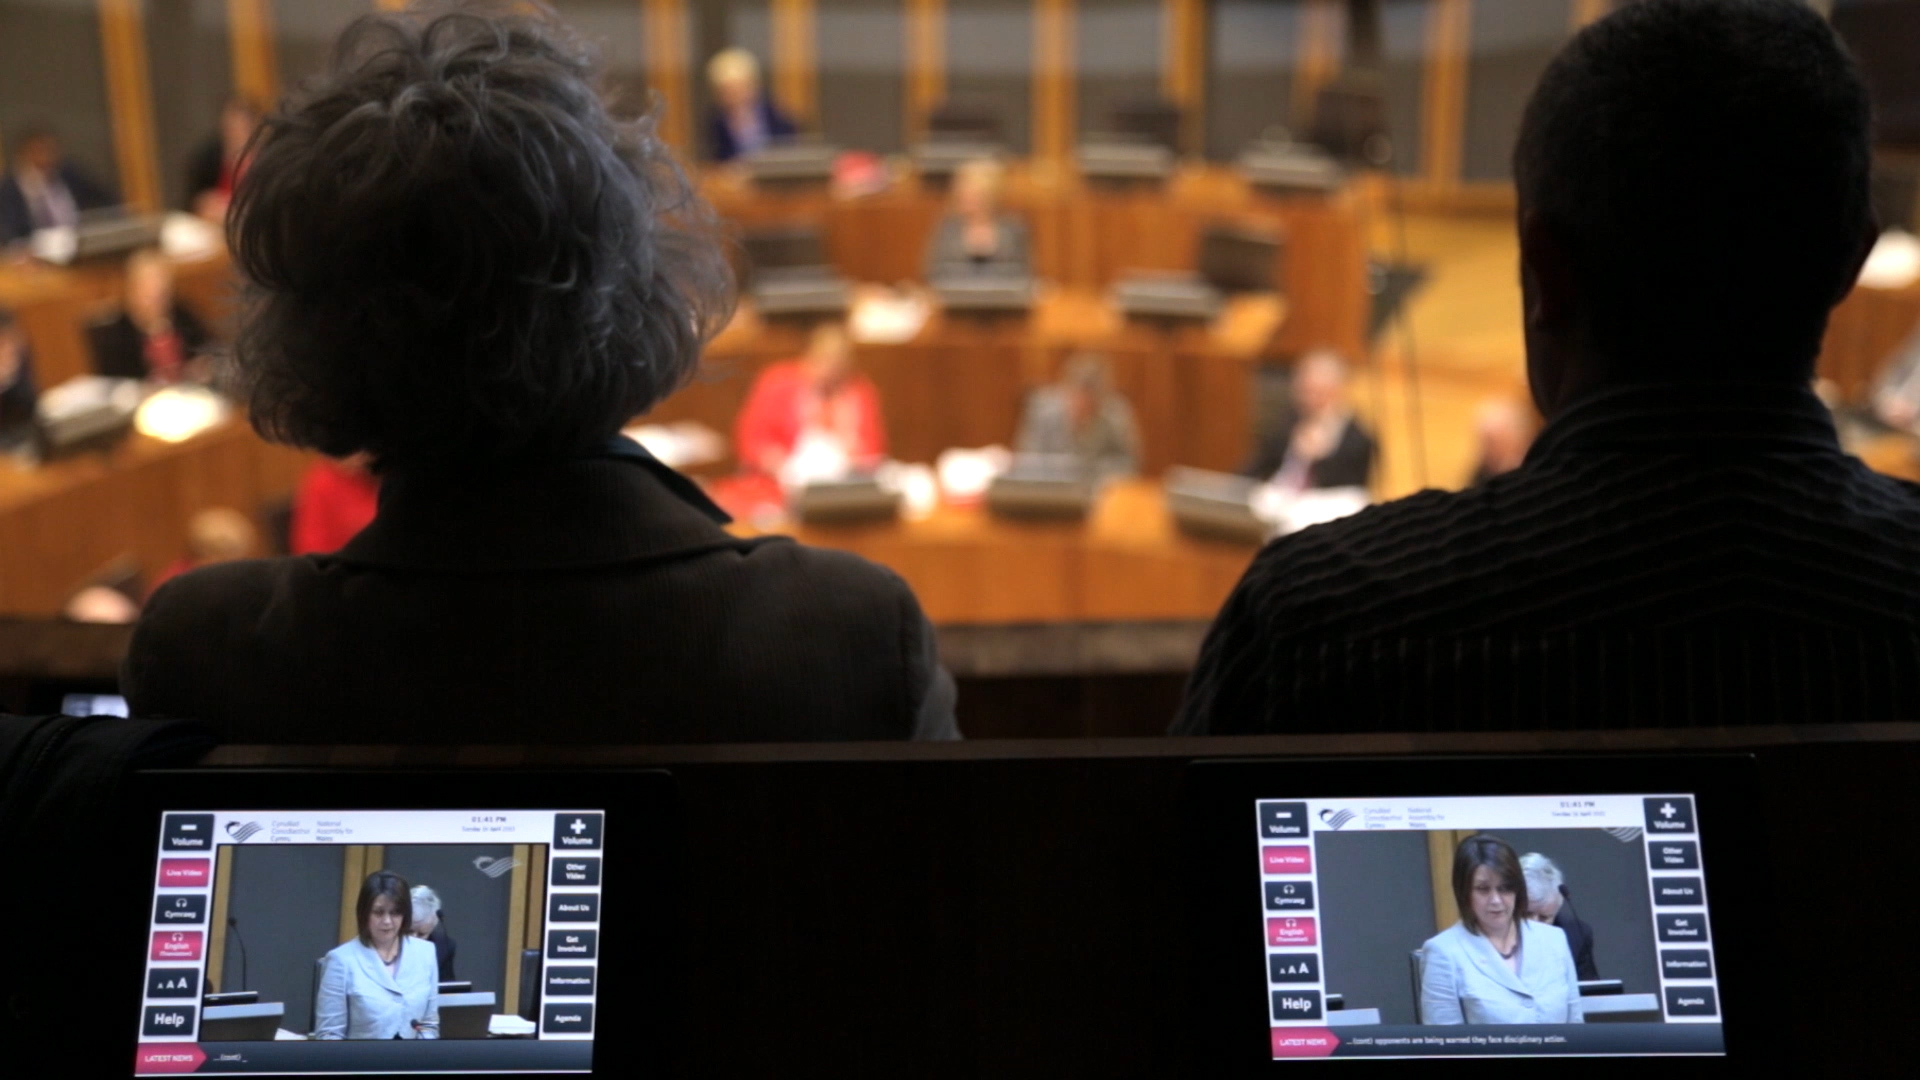 Two people sit in the chamber of the Welsh National Assembly watching politicians debate below.